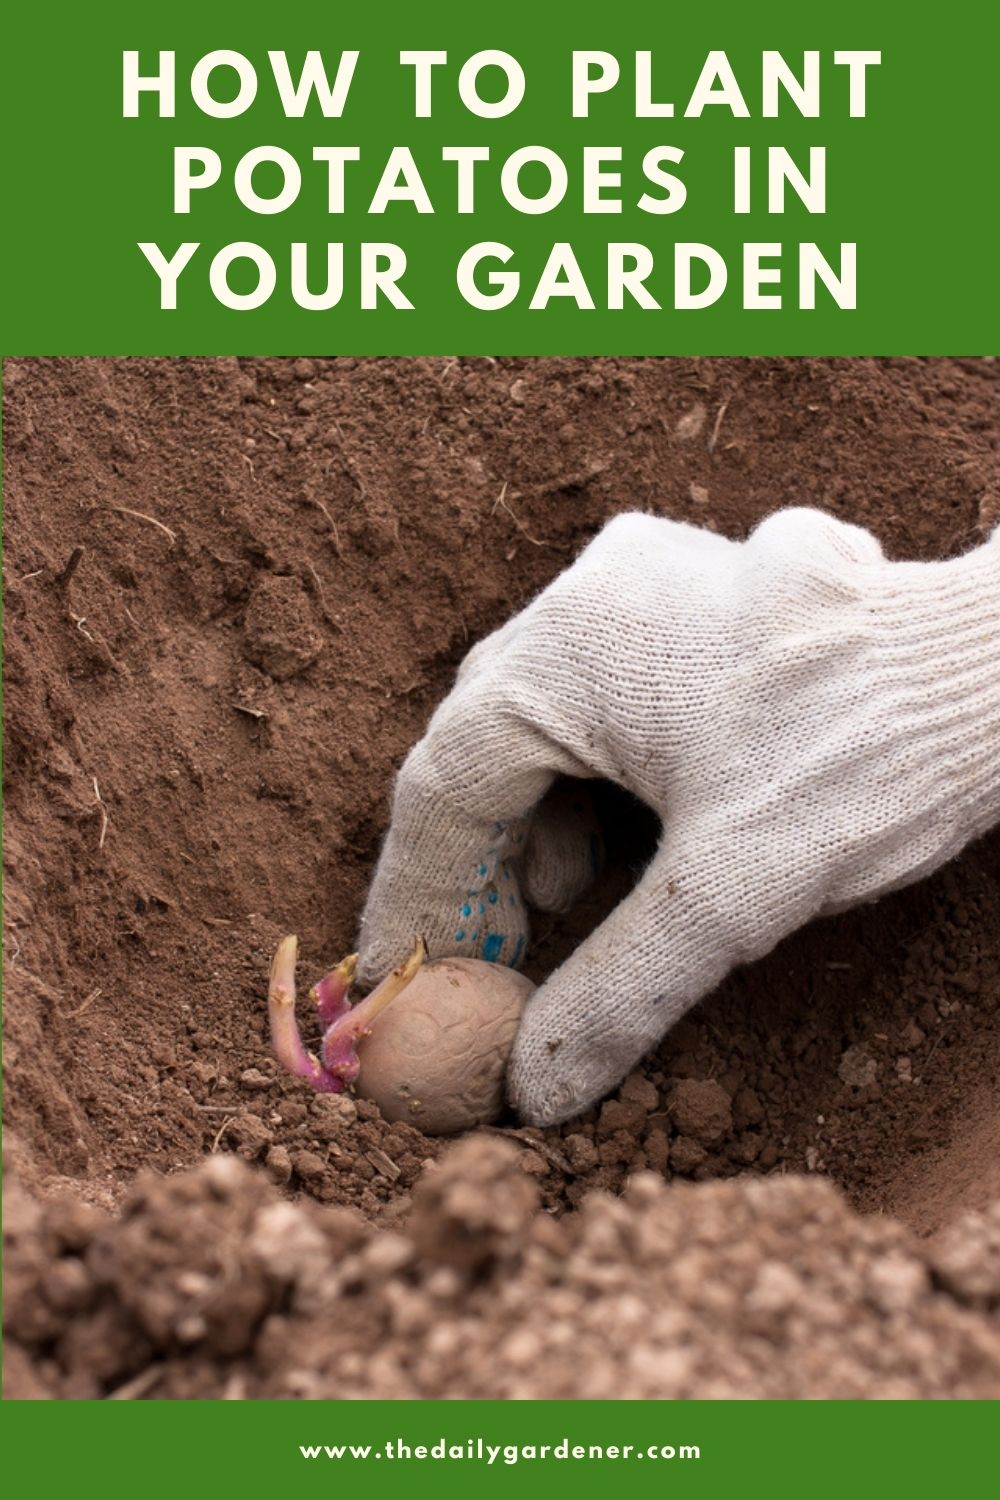 How to Plant Potatoes in Your Garden (Tricks to Care!) 2